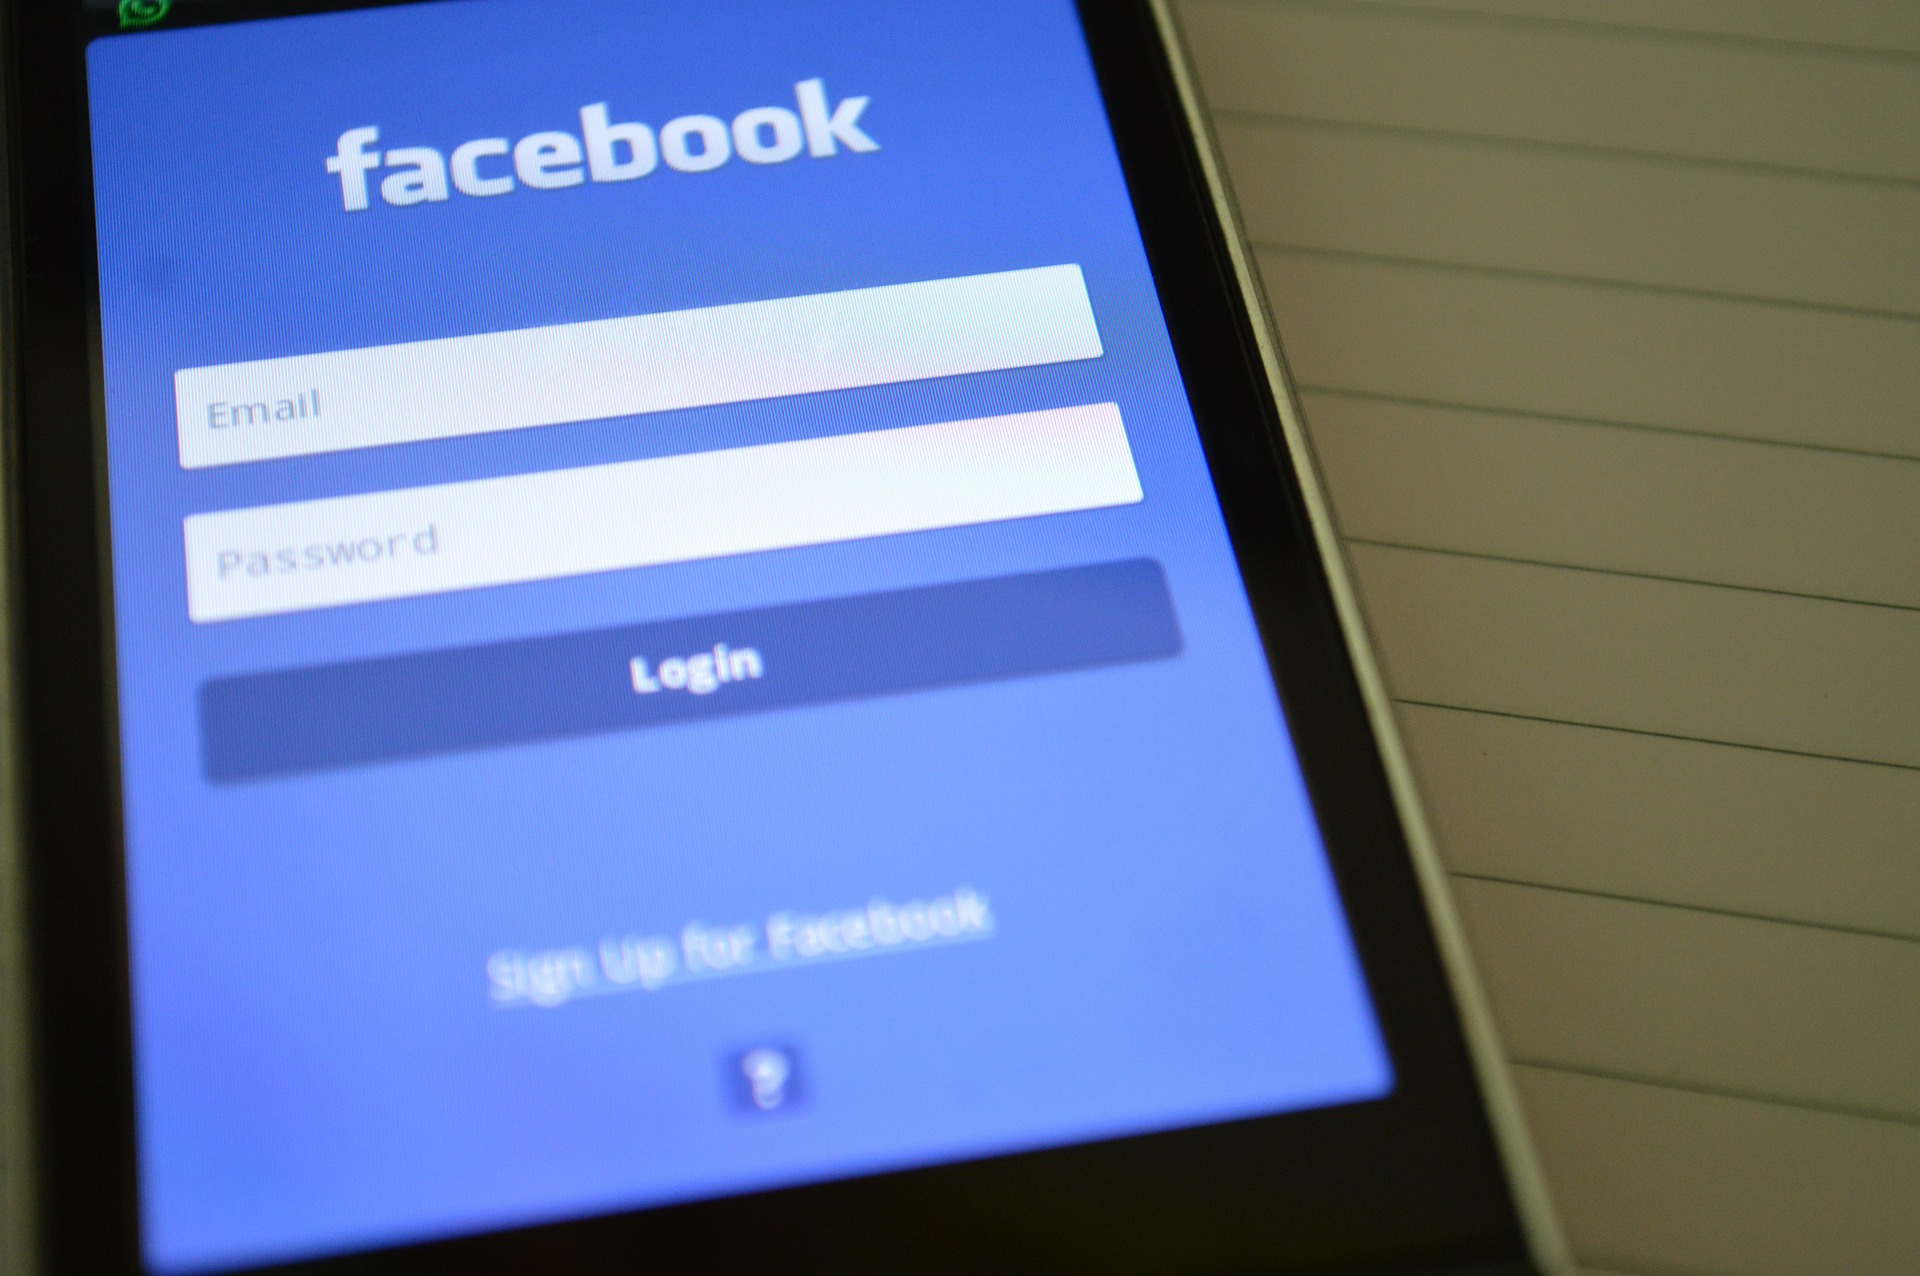 The Facebook login page on the screen of a mobile phone.